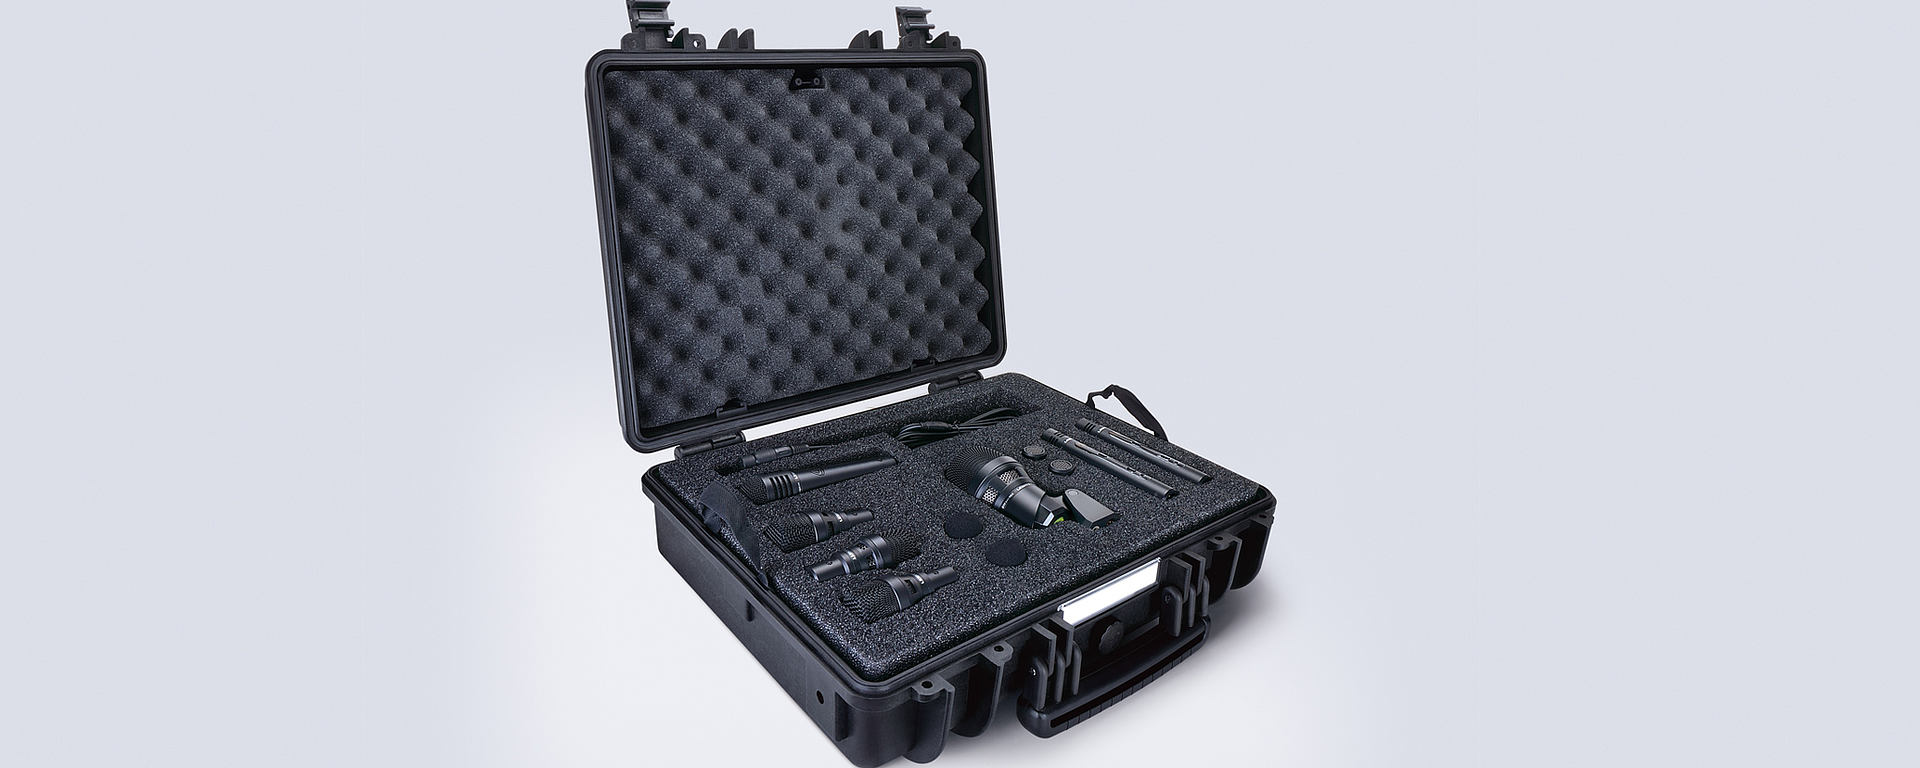 This image shows the DTP Beat Kit Pro 7 drum microphone package in its case